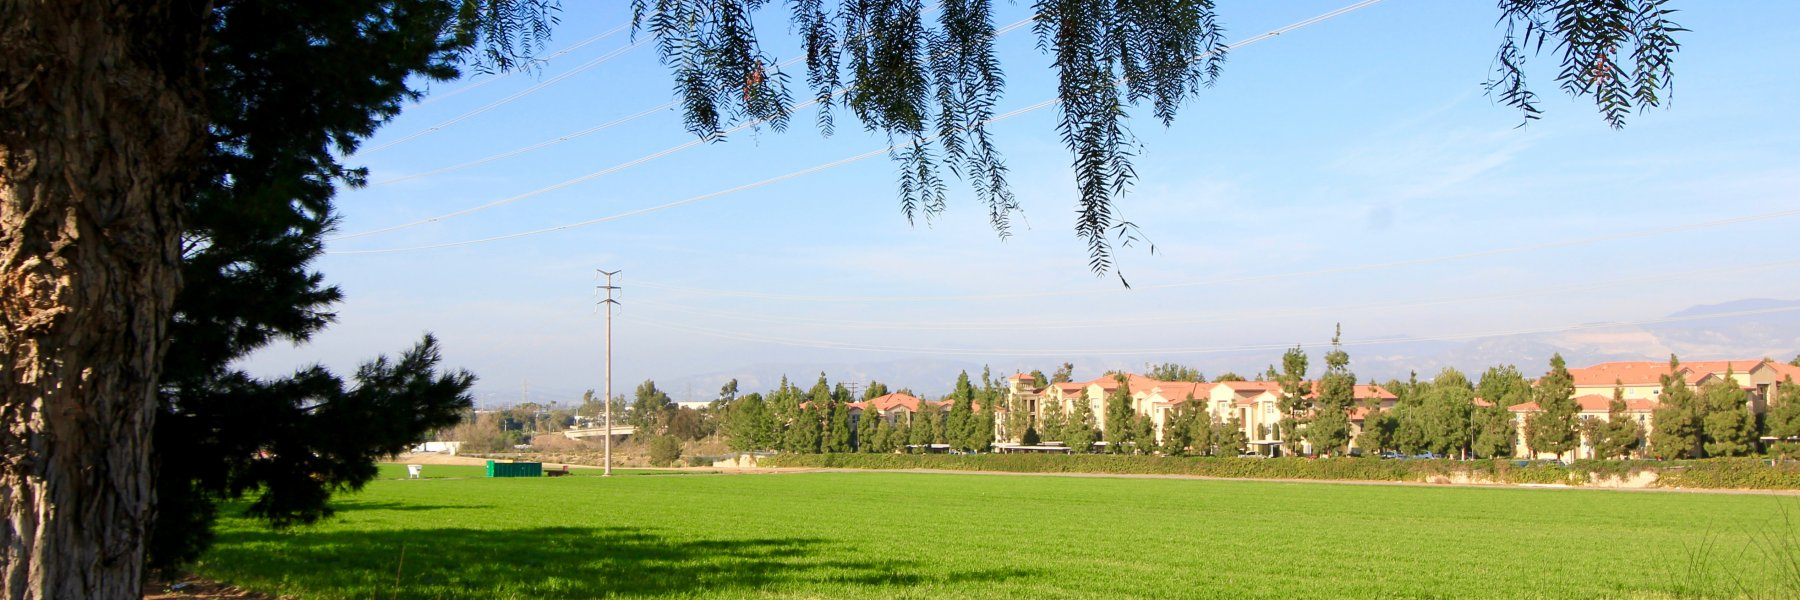 Quail Hill is a community of homes in Irvine California